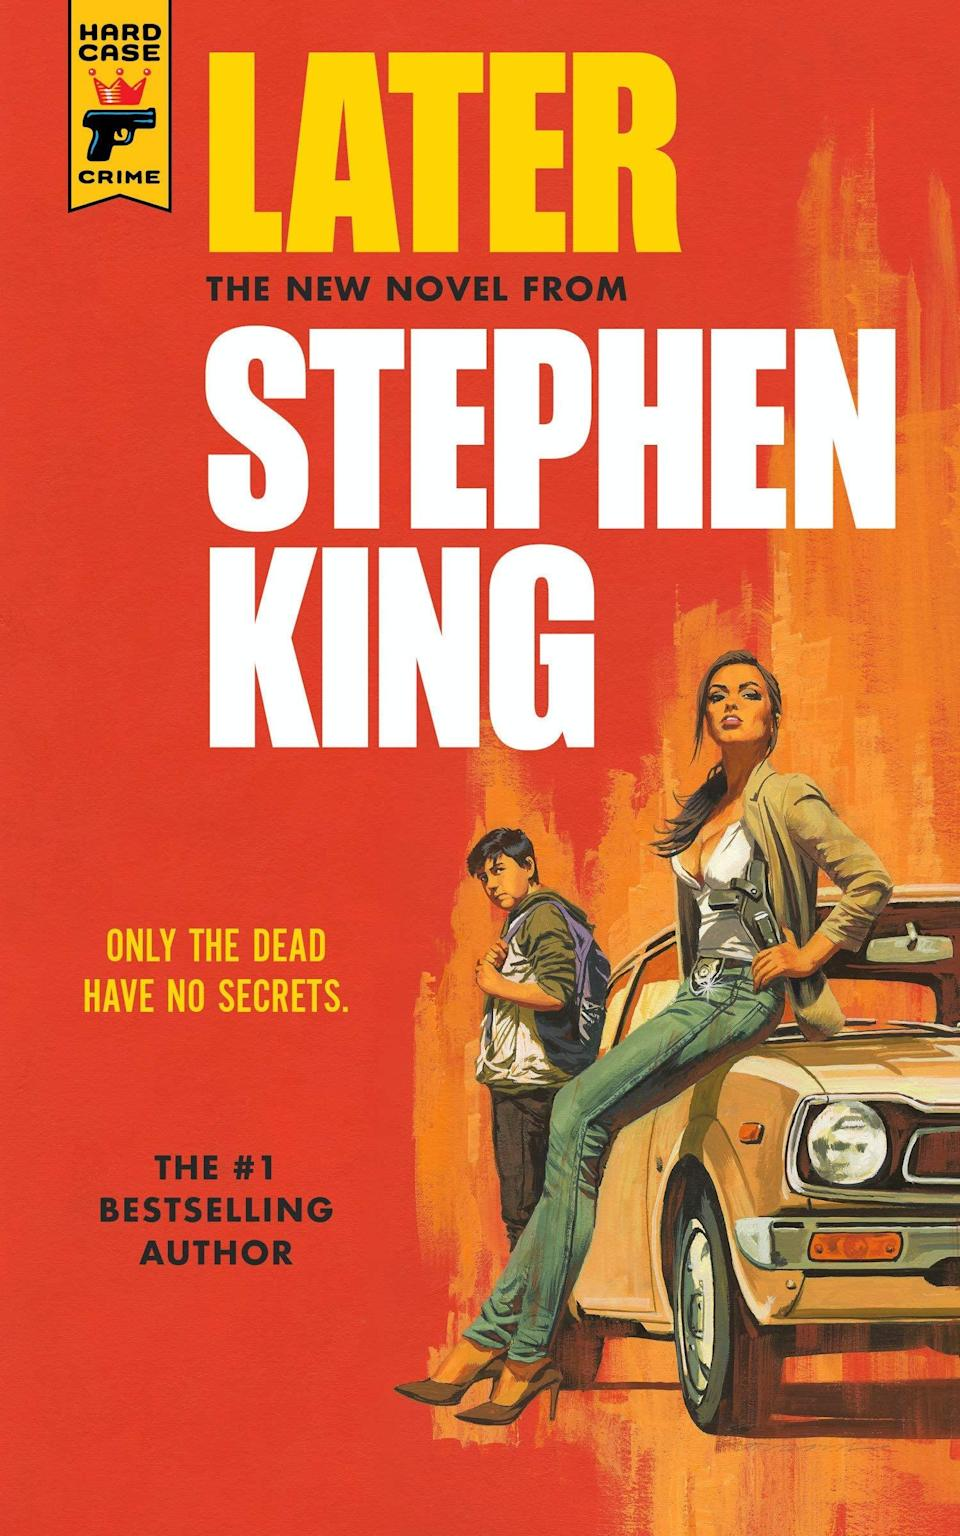 <p>Prolific author Stephen King mixes the trappings of a classic crime novel with his trademark horror touches in <span><strong>Later</strong></span>. All Jamie Conklin wants is to lead a normal life, but the young boy's special abilities make him an asset to an NYPD detective trying to stop a killer who is threatening to cause mayhem even after their death.</p> <p><em>Out March 2</em></p>